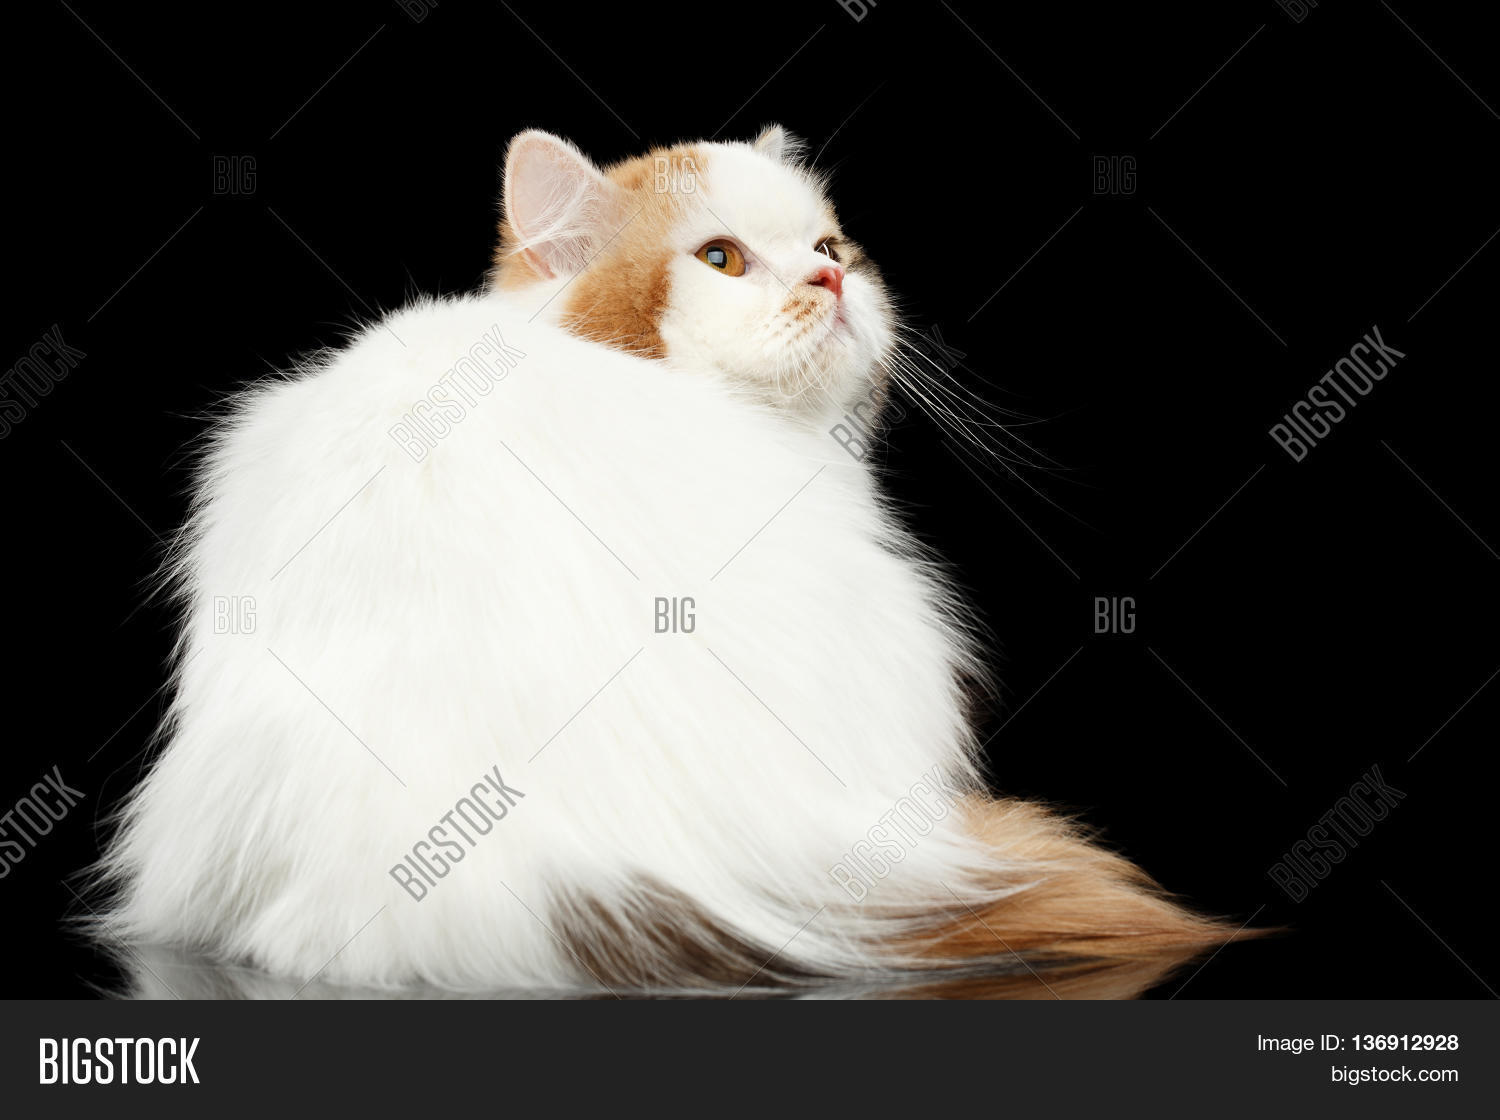 Color of cats fur - Mad Scottish Highland Straight Cat White With Red Color Of Fur Sitting And Angry